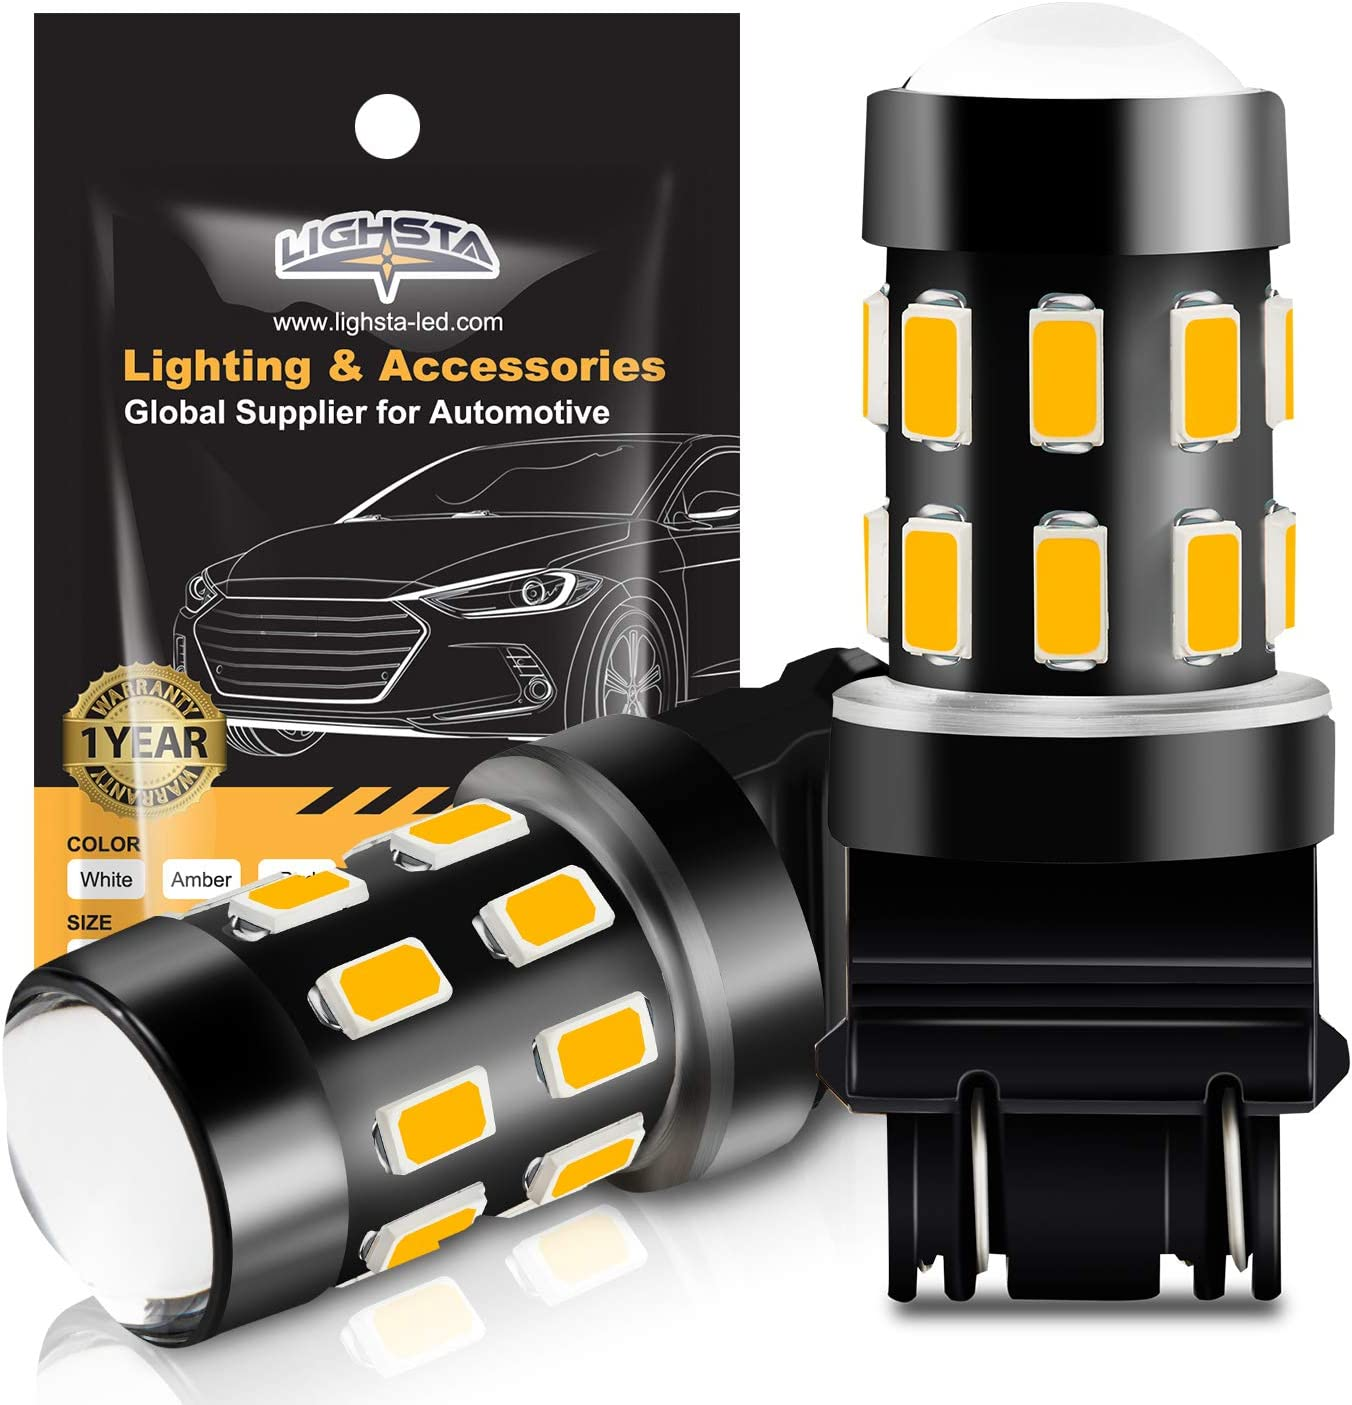 Pack of 2 Amber Yellow Side Marker Lights LIGHSTA Super Bright 24-SMD Non-Polarity 1073 1141 7506 BA15S LED Bulbs with Projector for Turn Signal Blinker Lights 1156 LED Bulbs